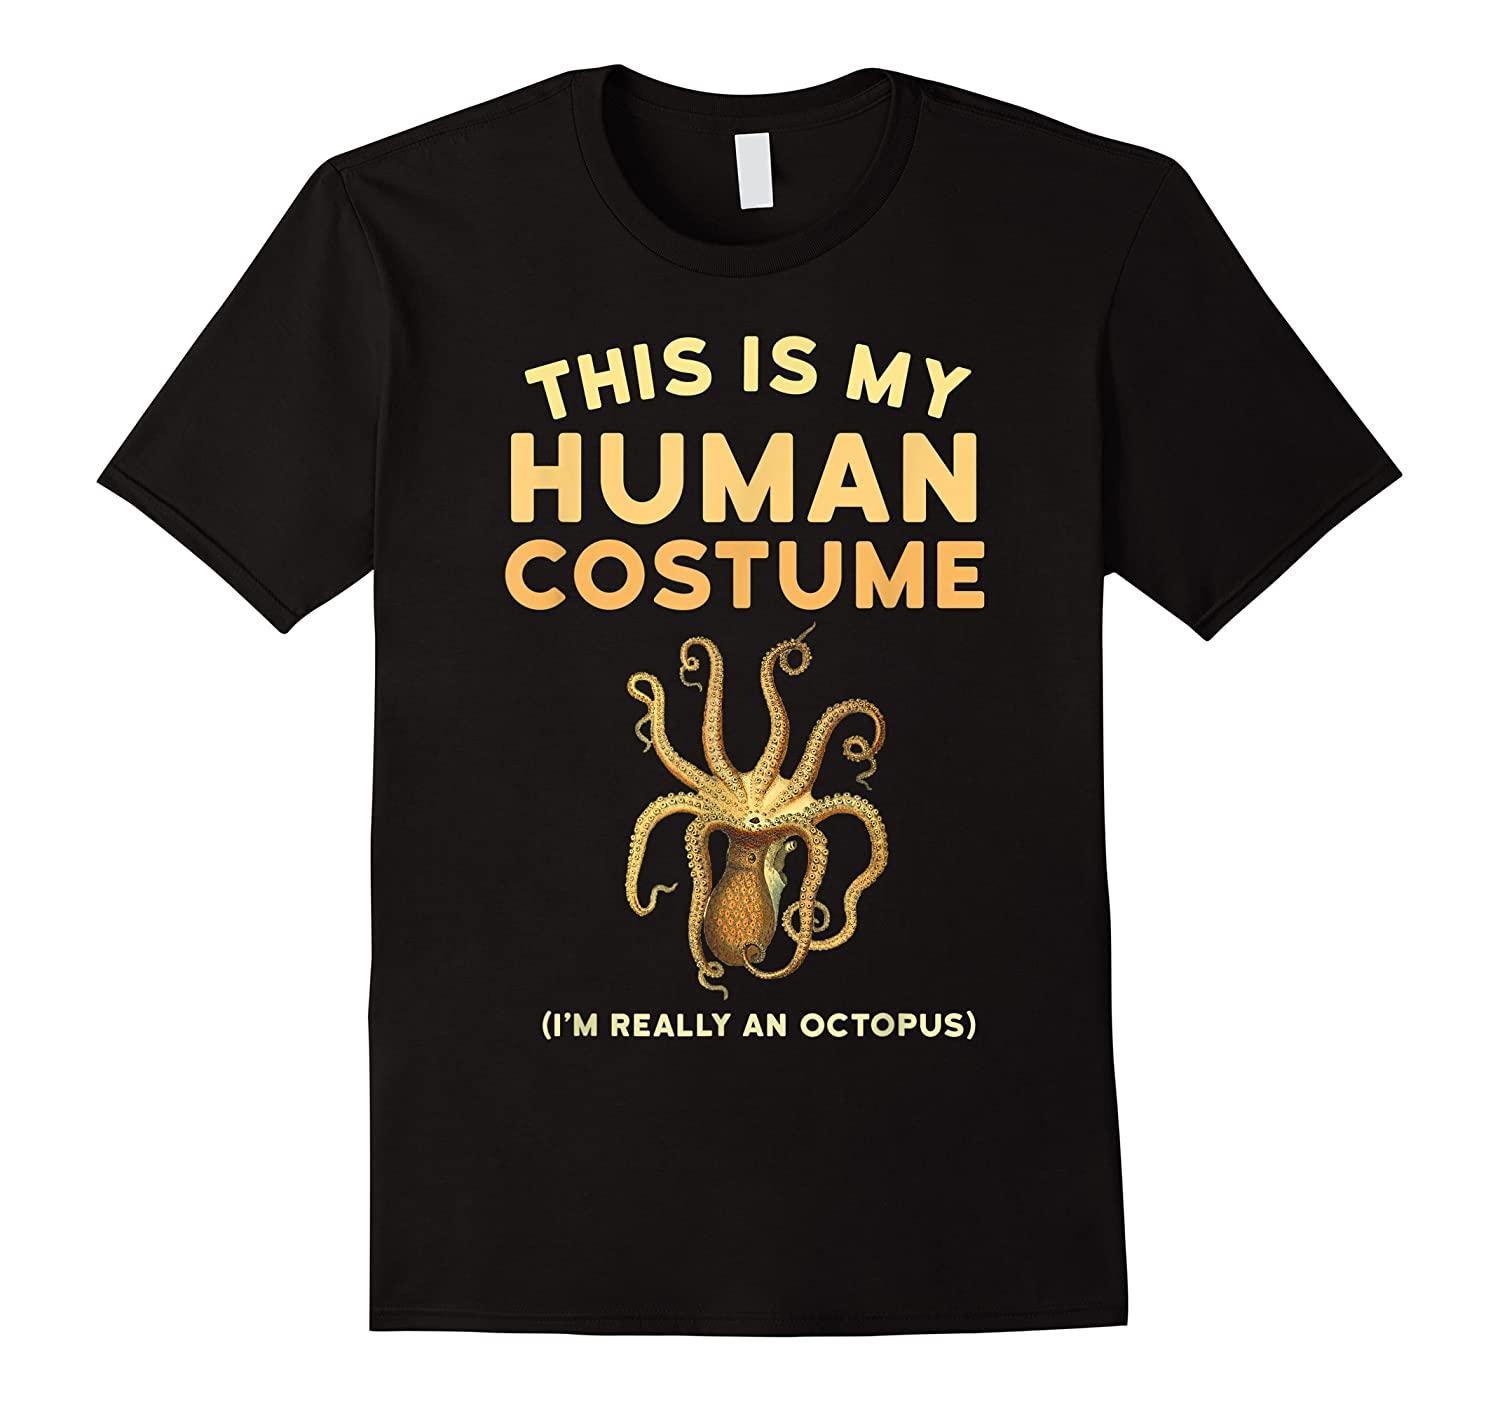 Octopus This Is My Human Costume I'm Really An Octopus Shirts